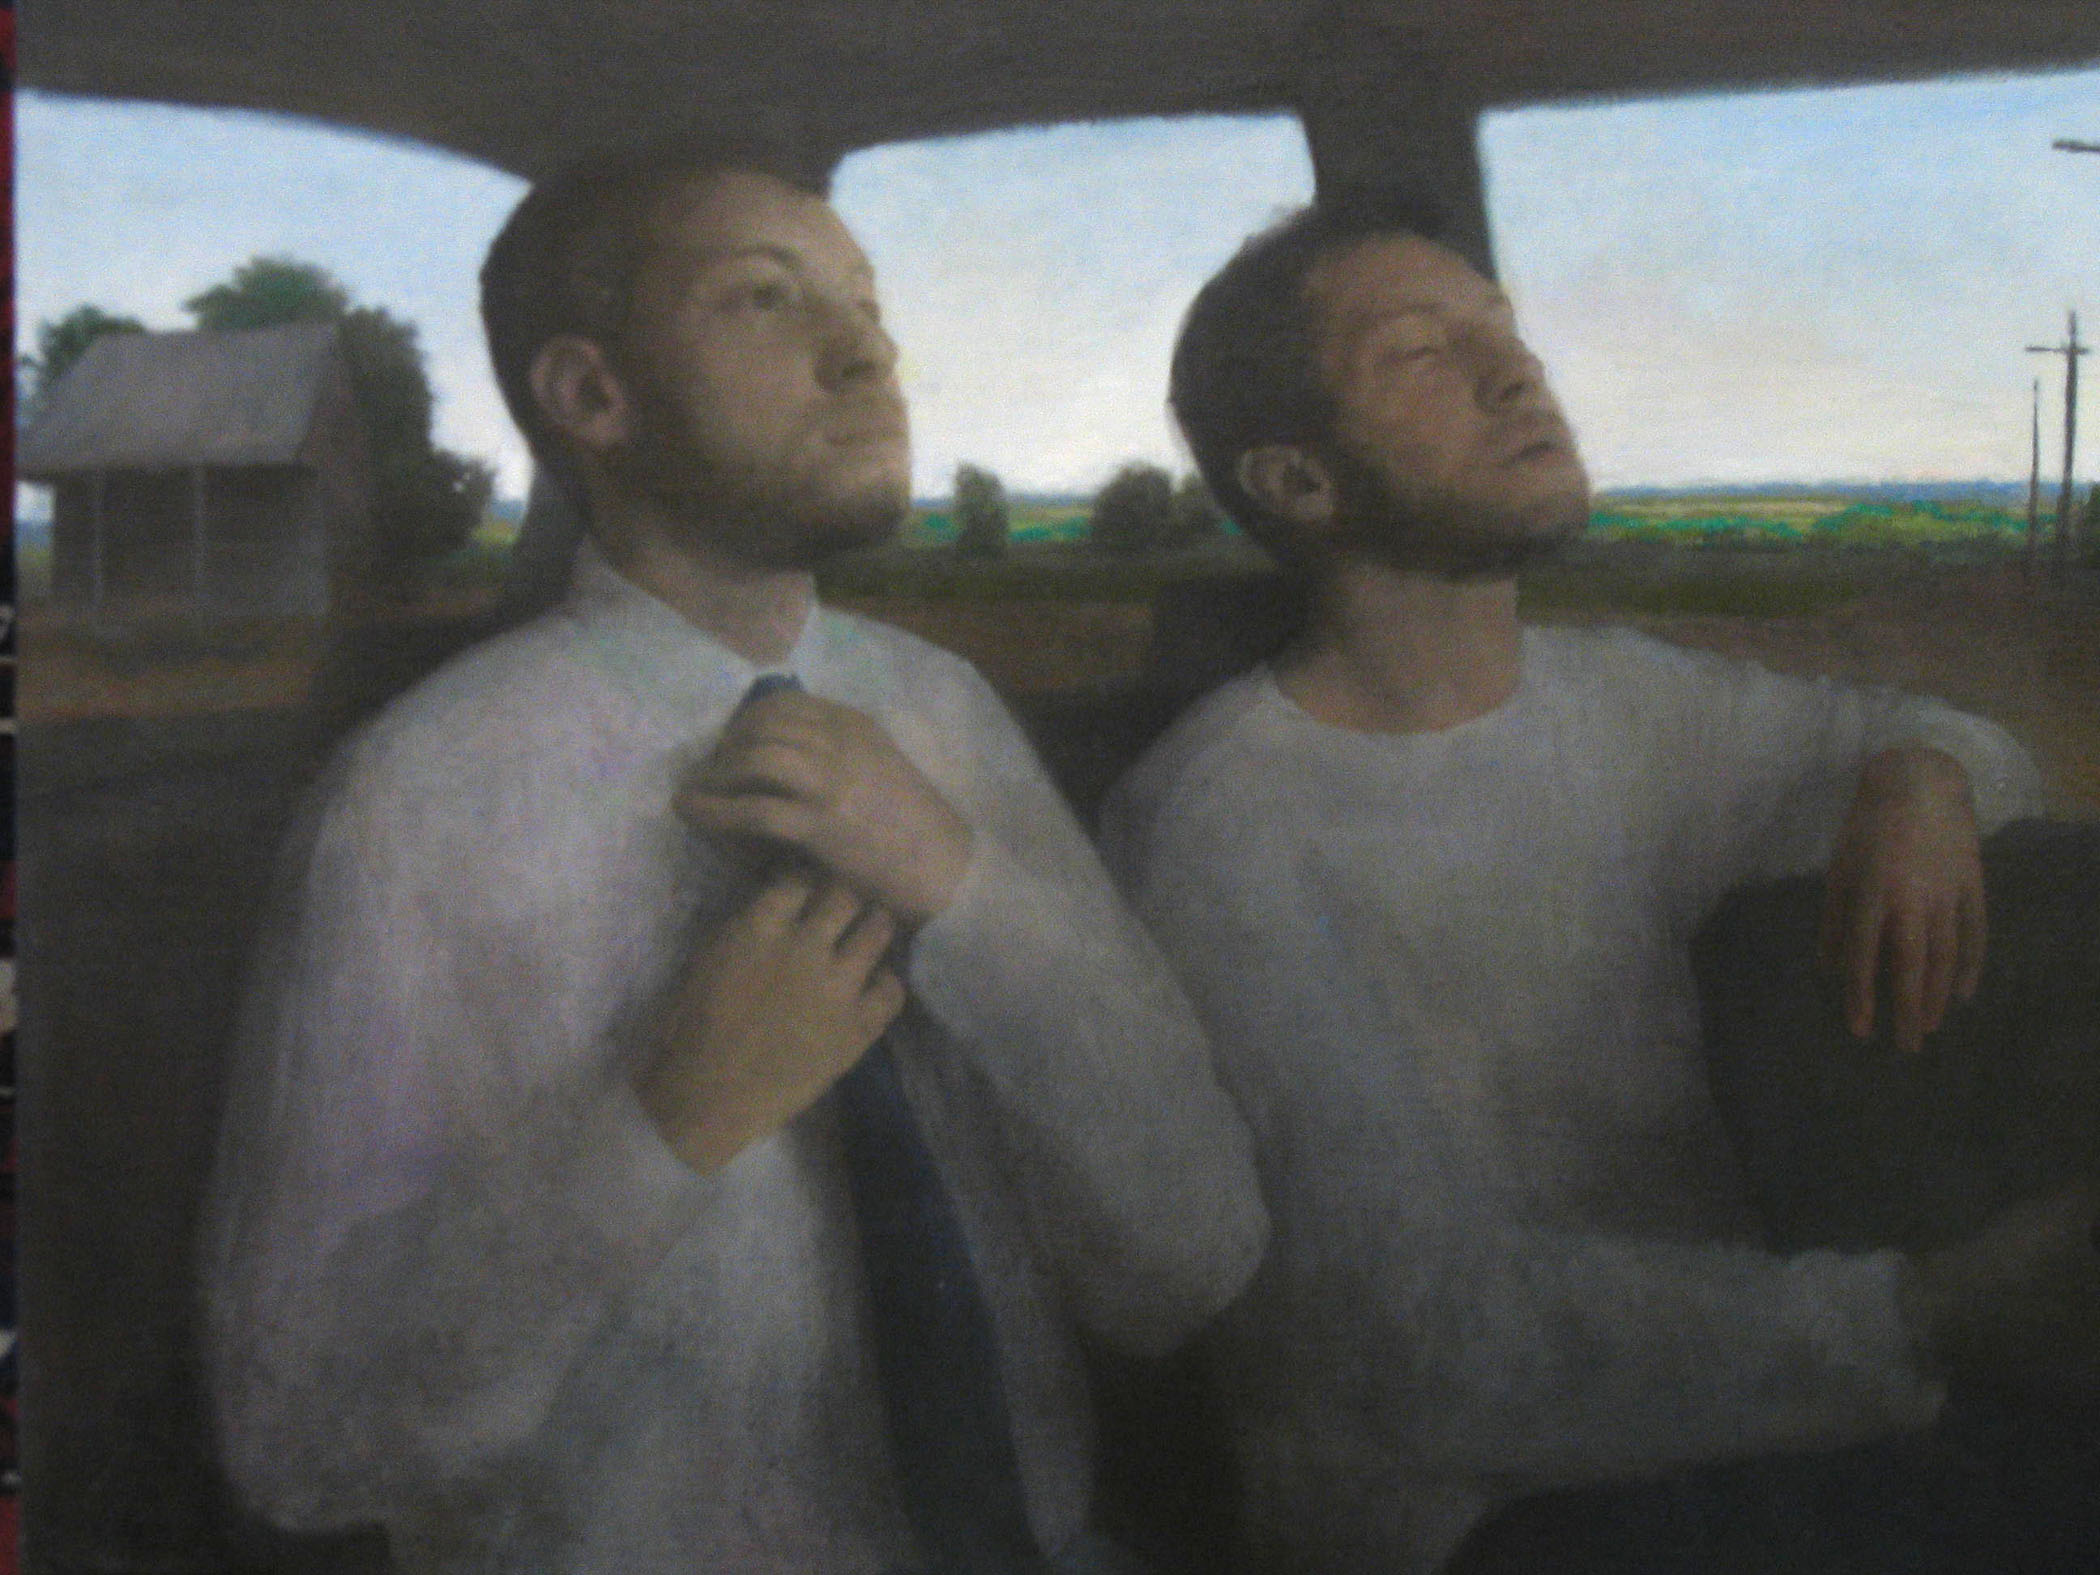 Bryan LeBoeuf   The Roads,  2003  oil on linen  19 x 25 inches